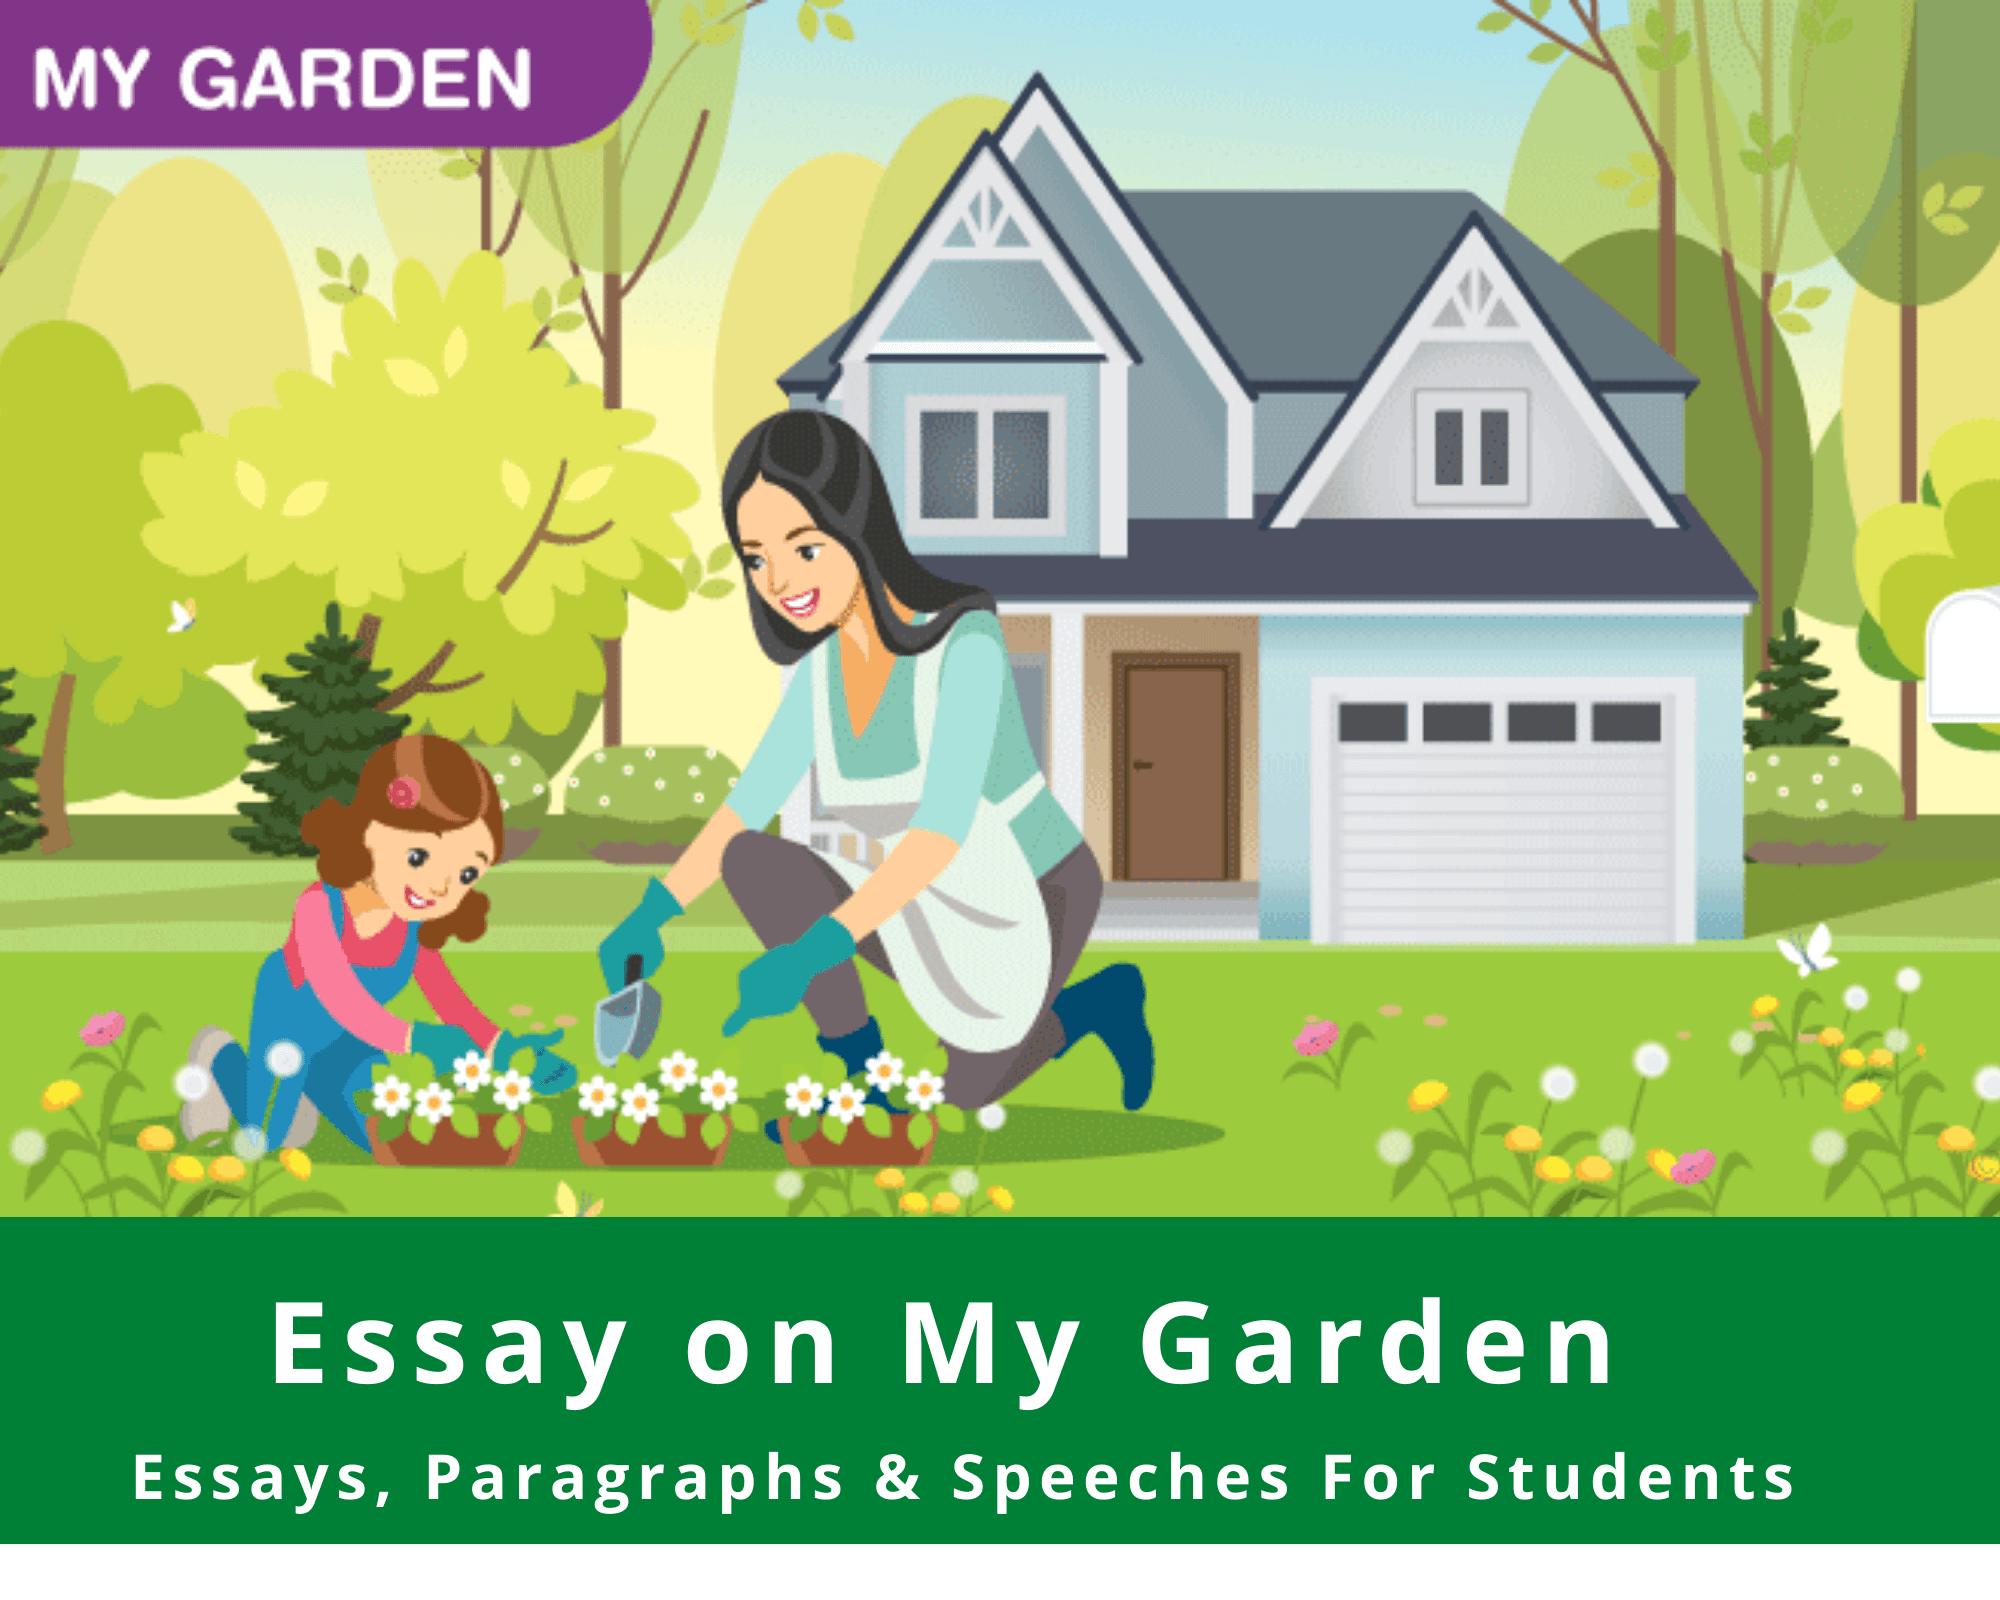 Essay on Garden For Students